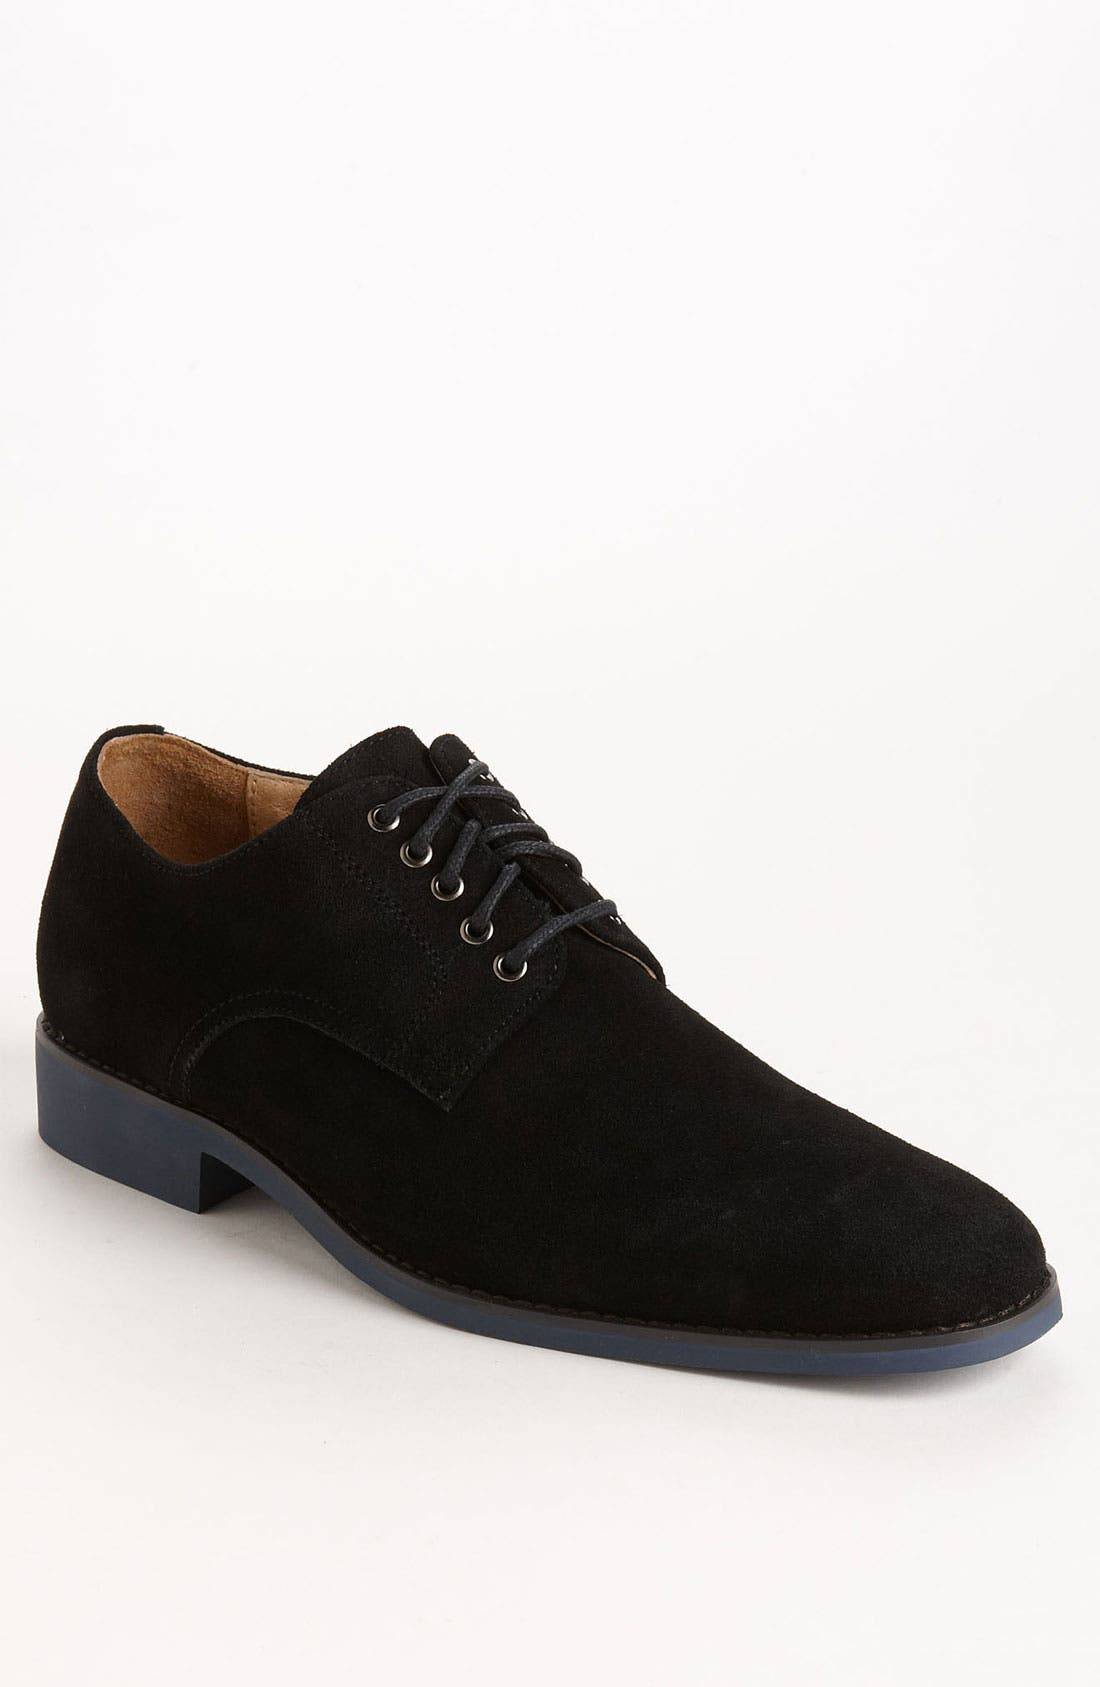 Alternate Image 1 Selected - JD Fisk 'Vincent' Suede Buck Shoe